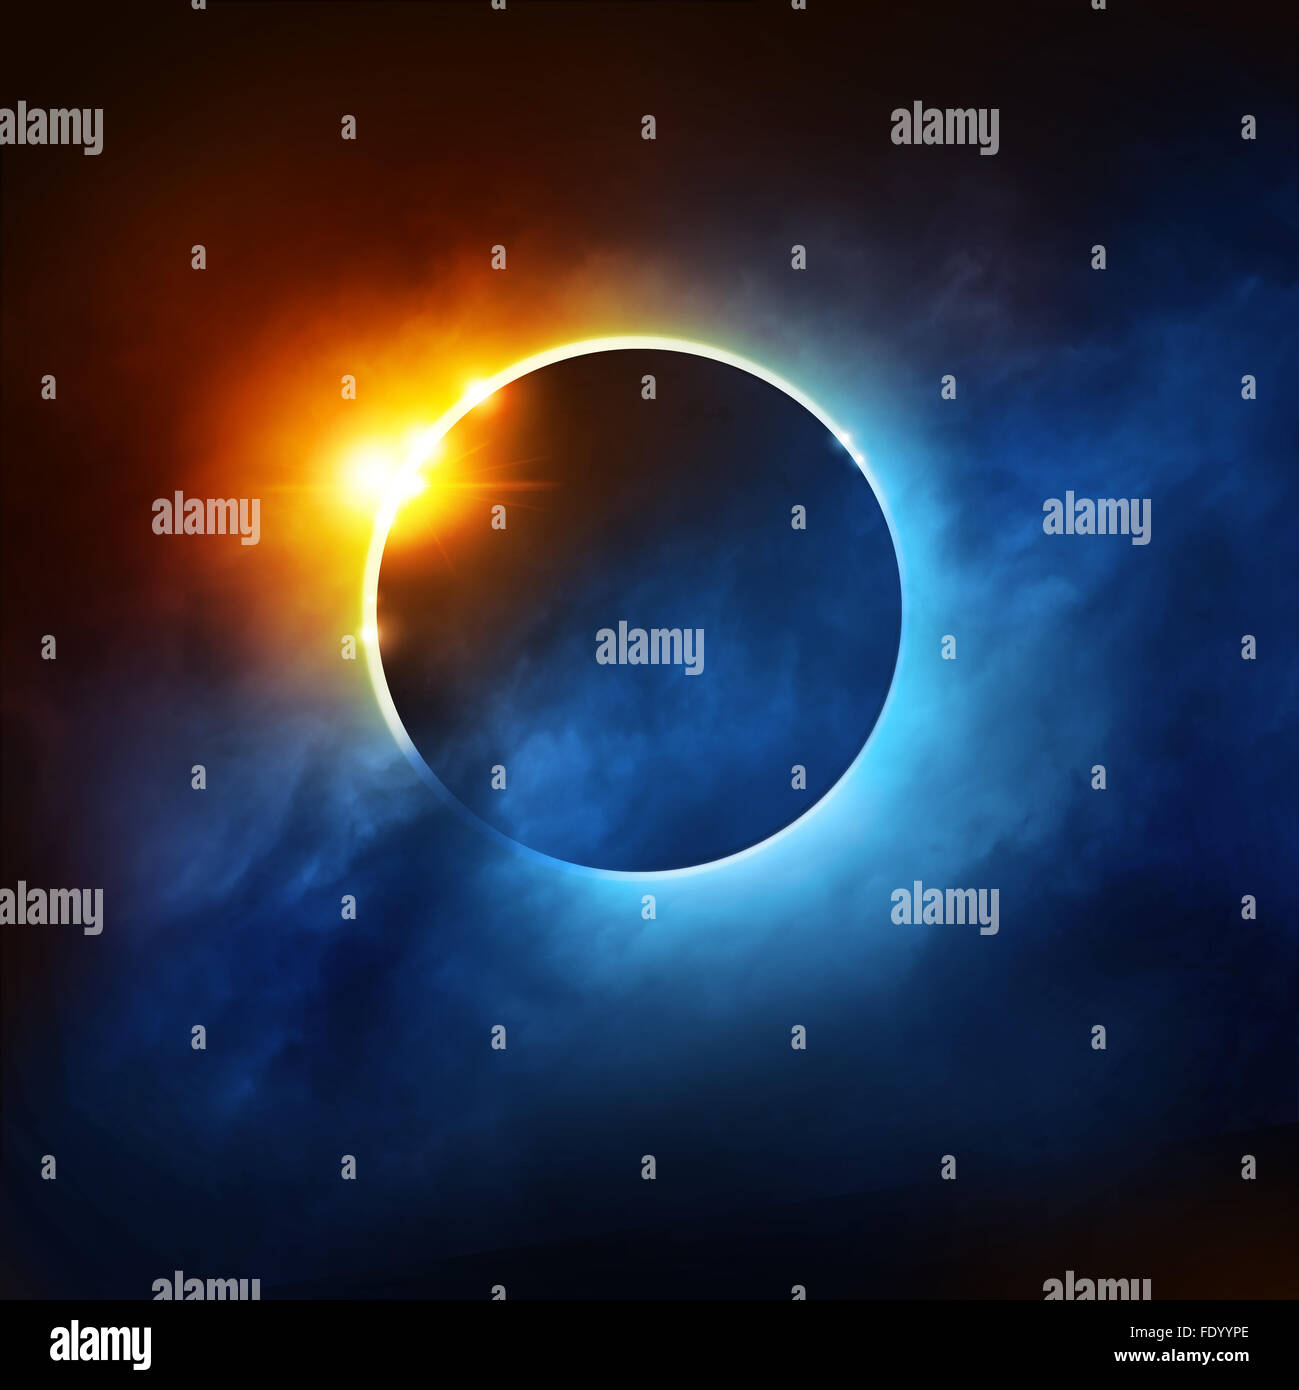 A Total Eclipse of the Sun. Dramatic Solar Eclipse illustration. - Stock Image